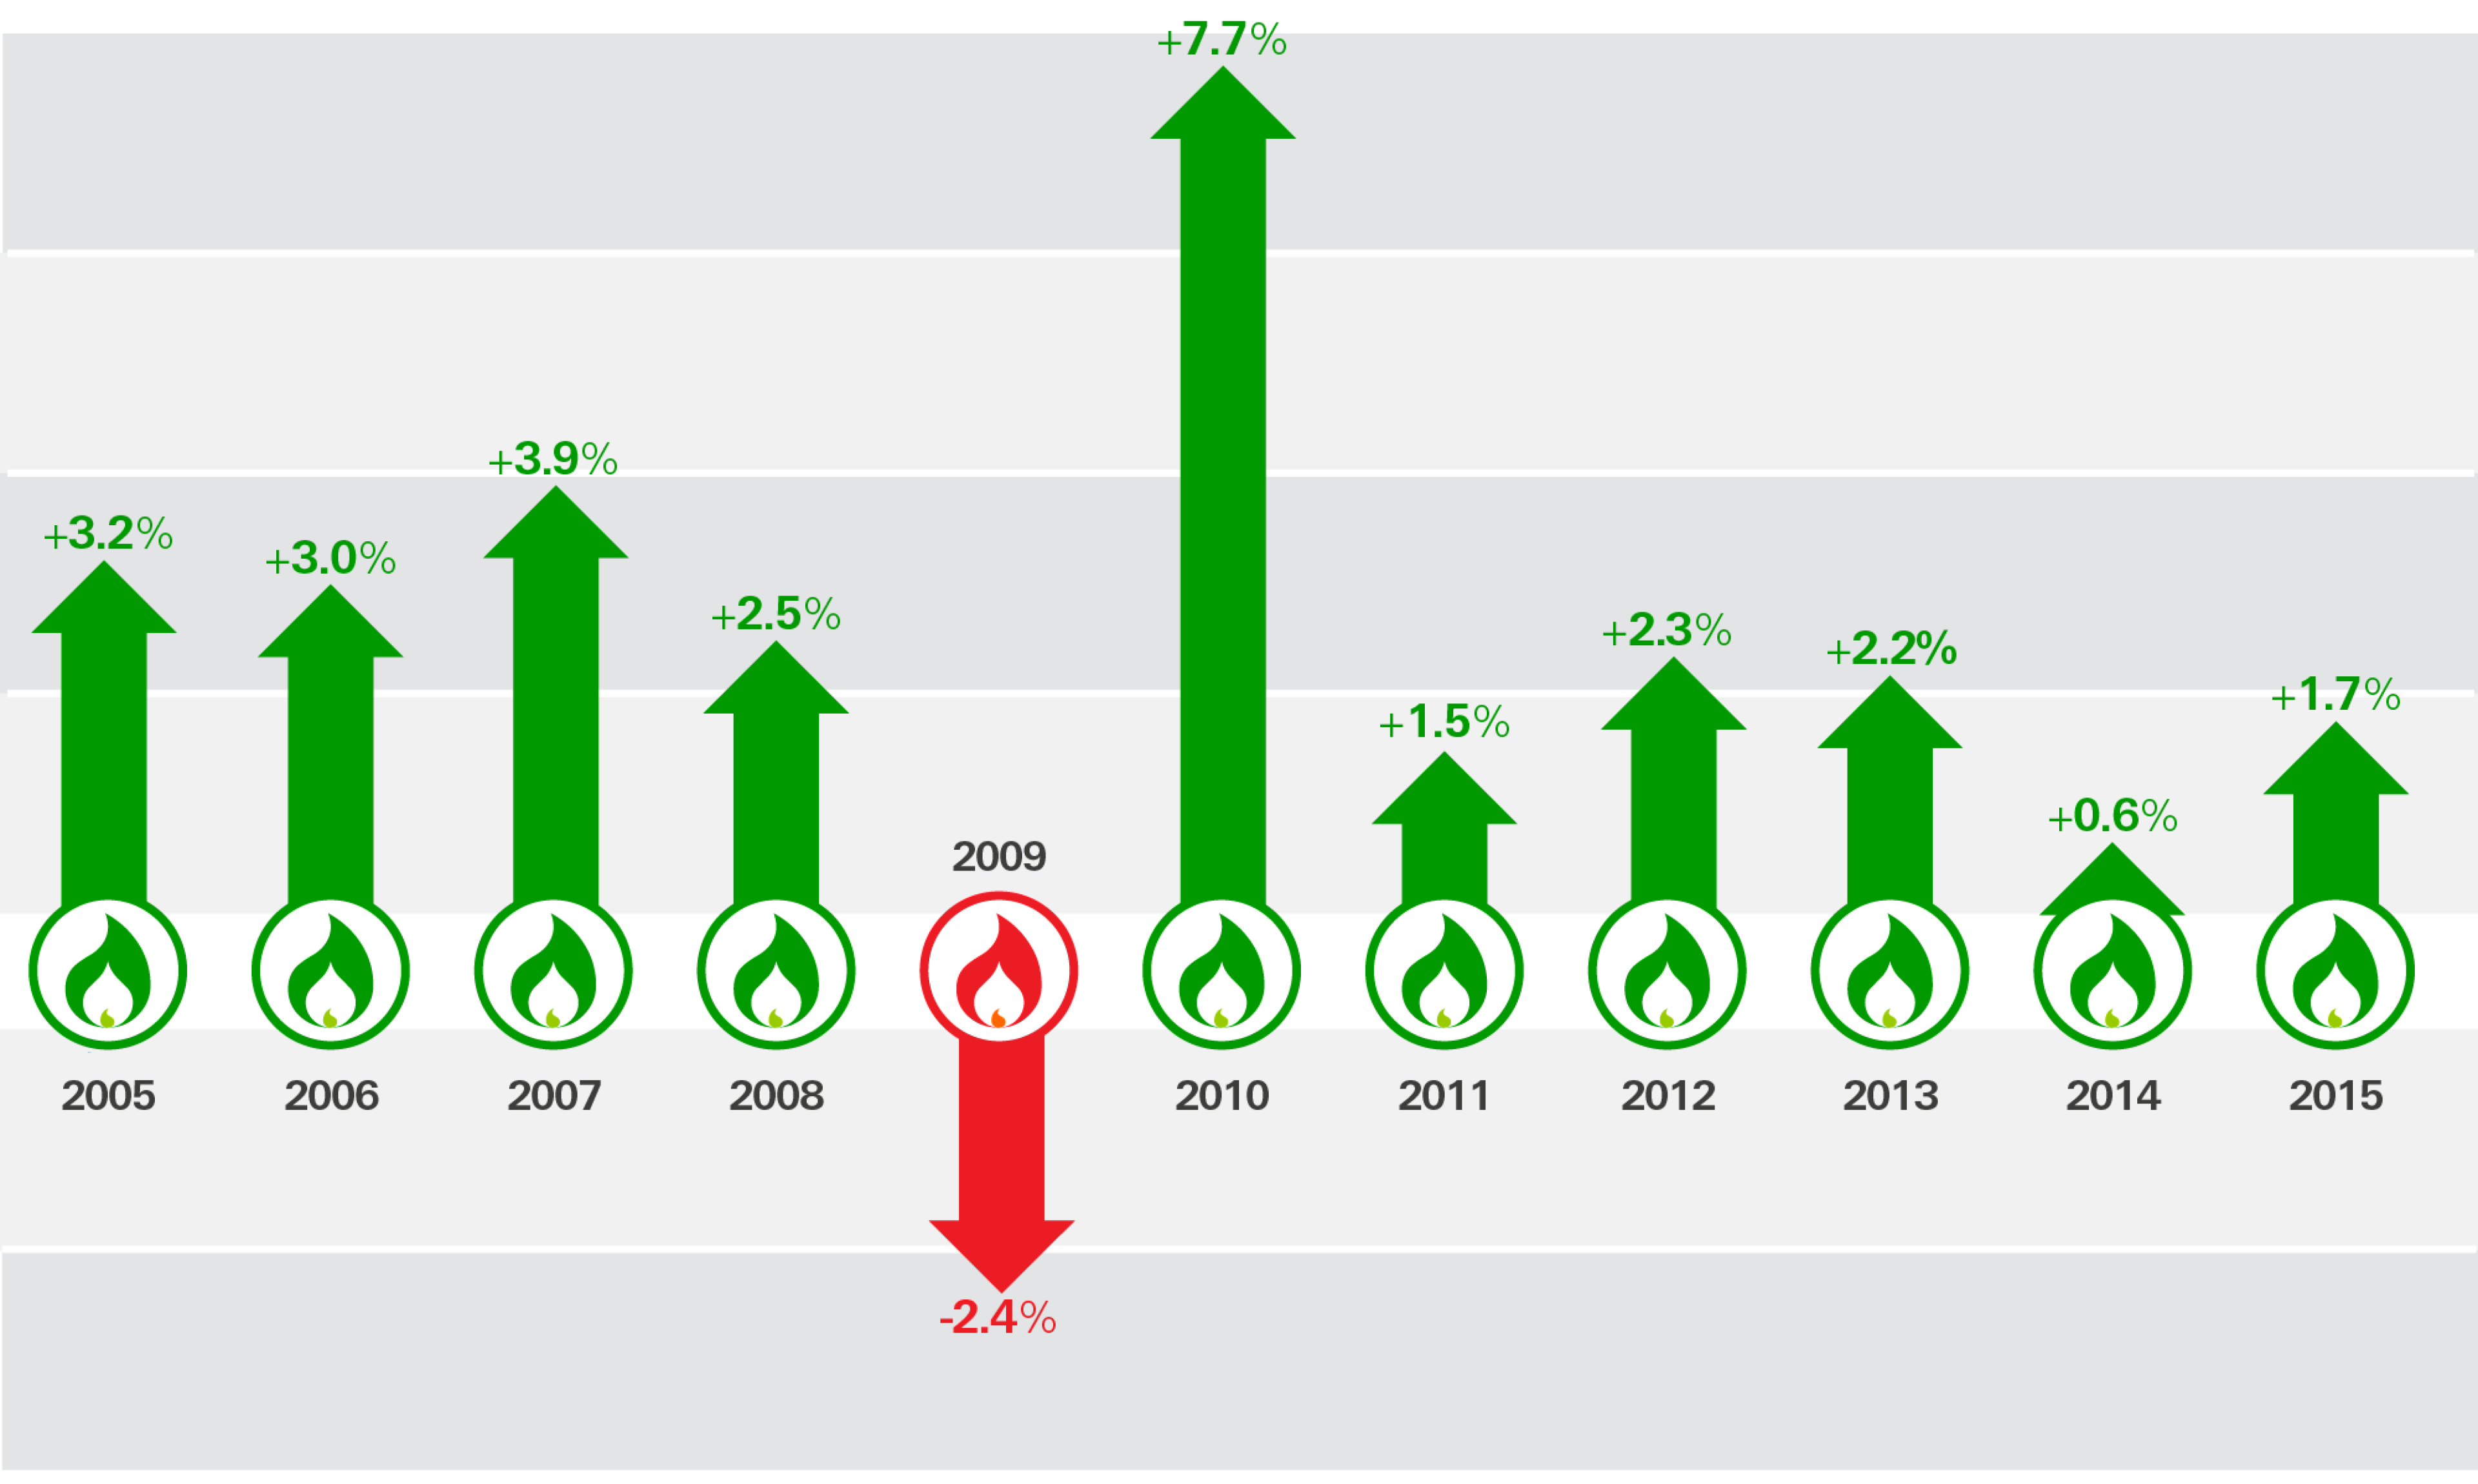 Graphic shows % change in global natural gas consumption year-on-year since 2005